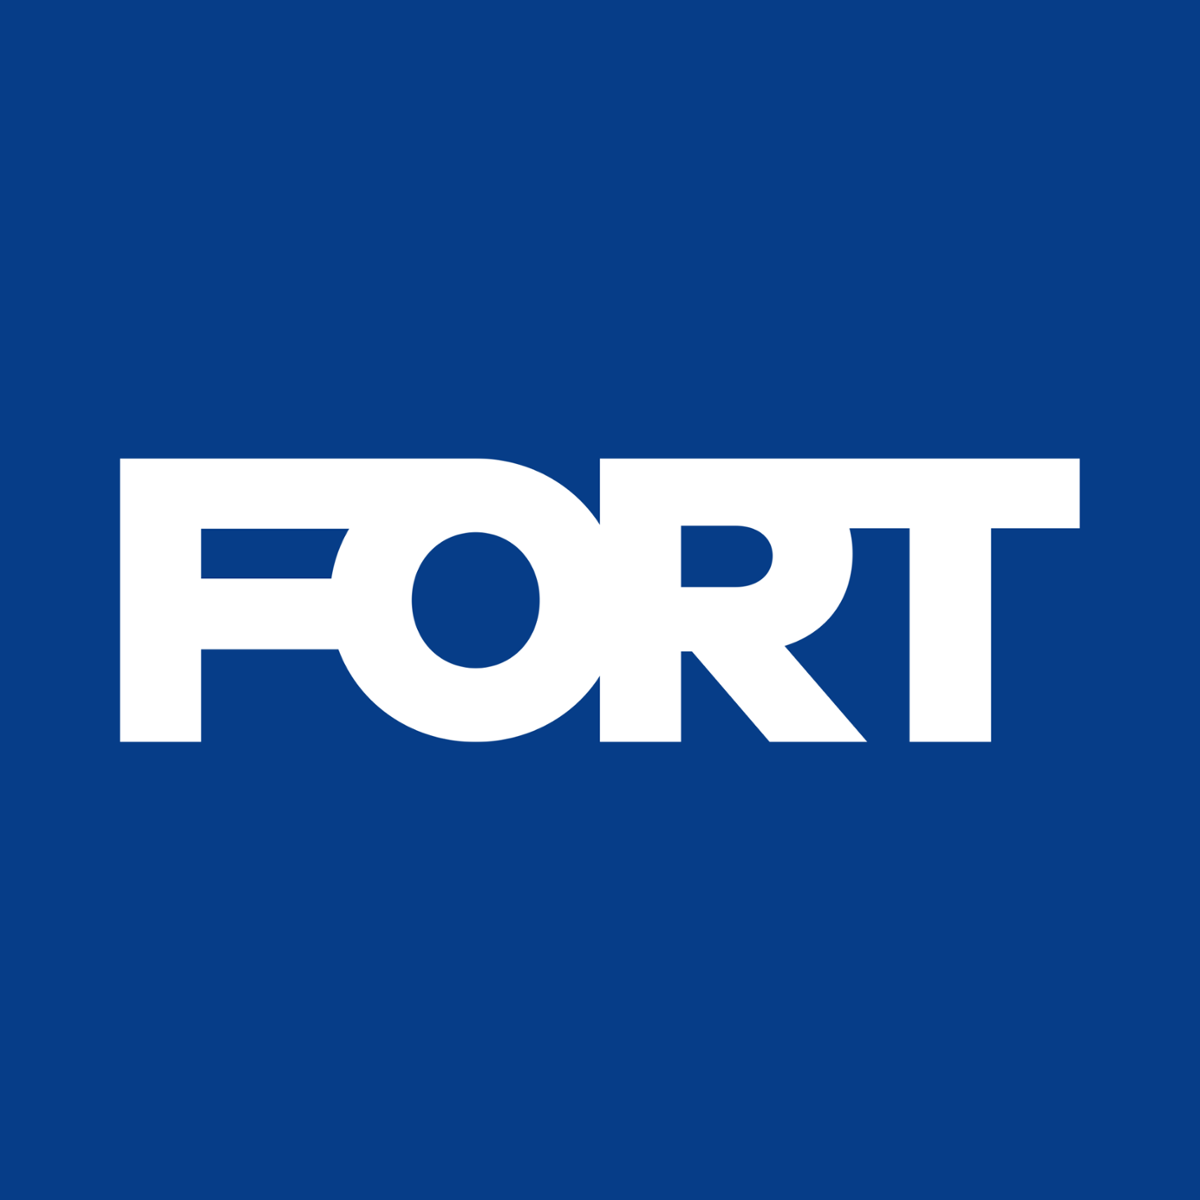 FORT ROBOTICS INTRODUCES NEW SAFETY AND SECURITY PLATFORM